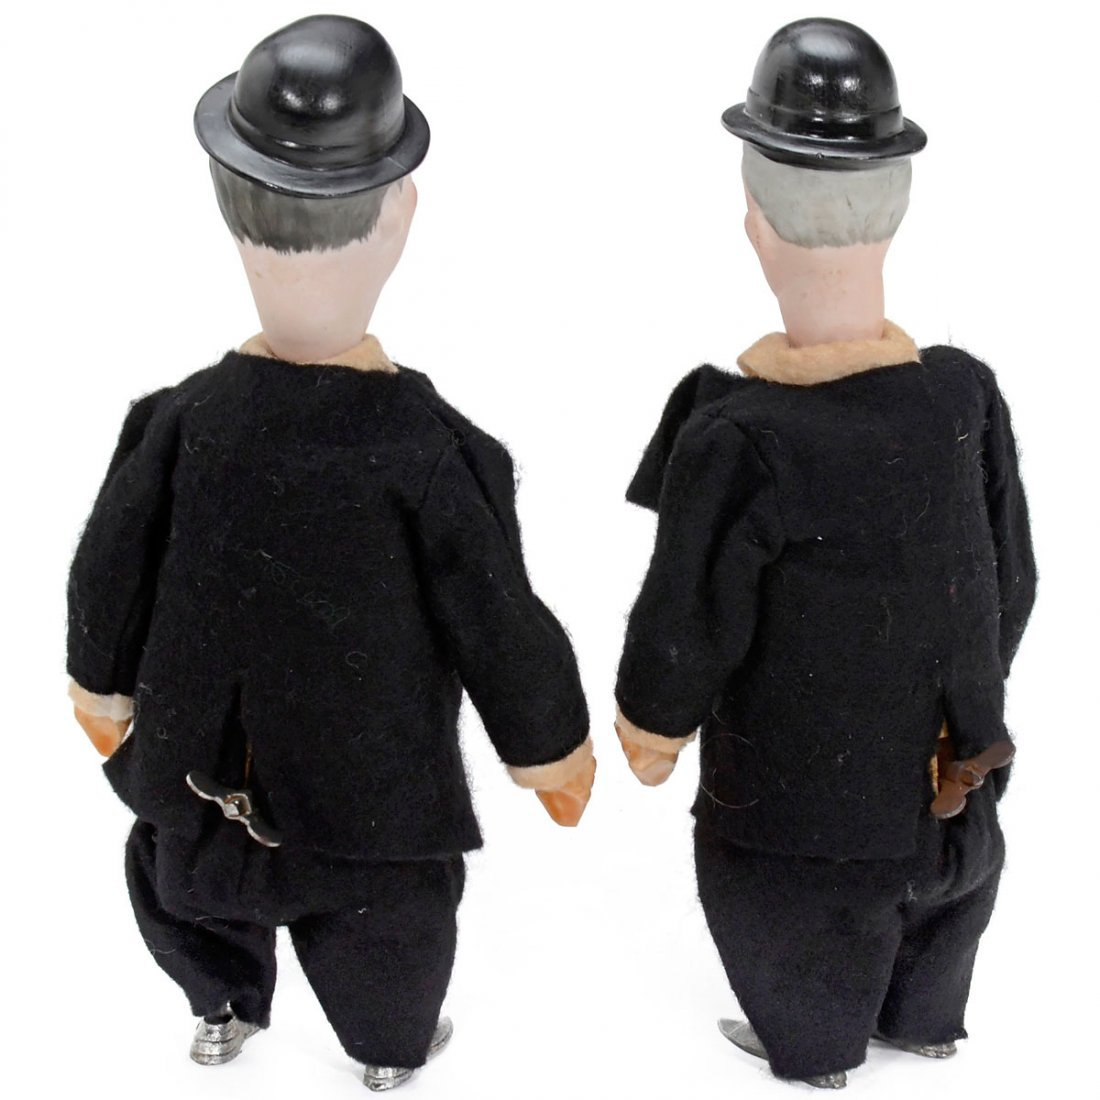 Rare Laurel and Hardy Clockwork Toys by Hertwig & Co., - 2